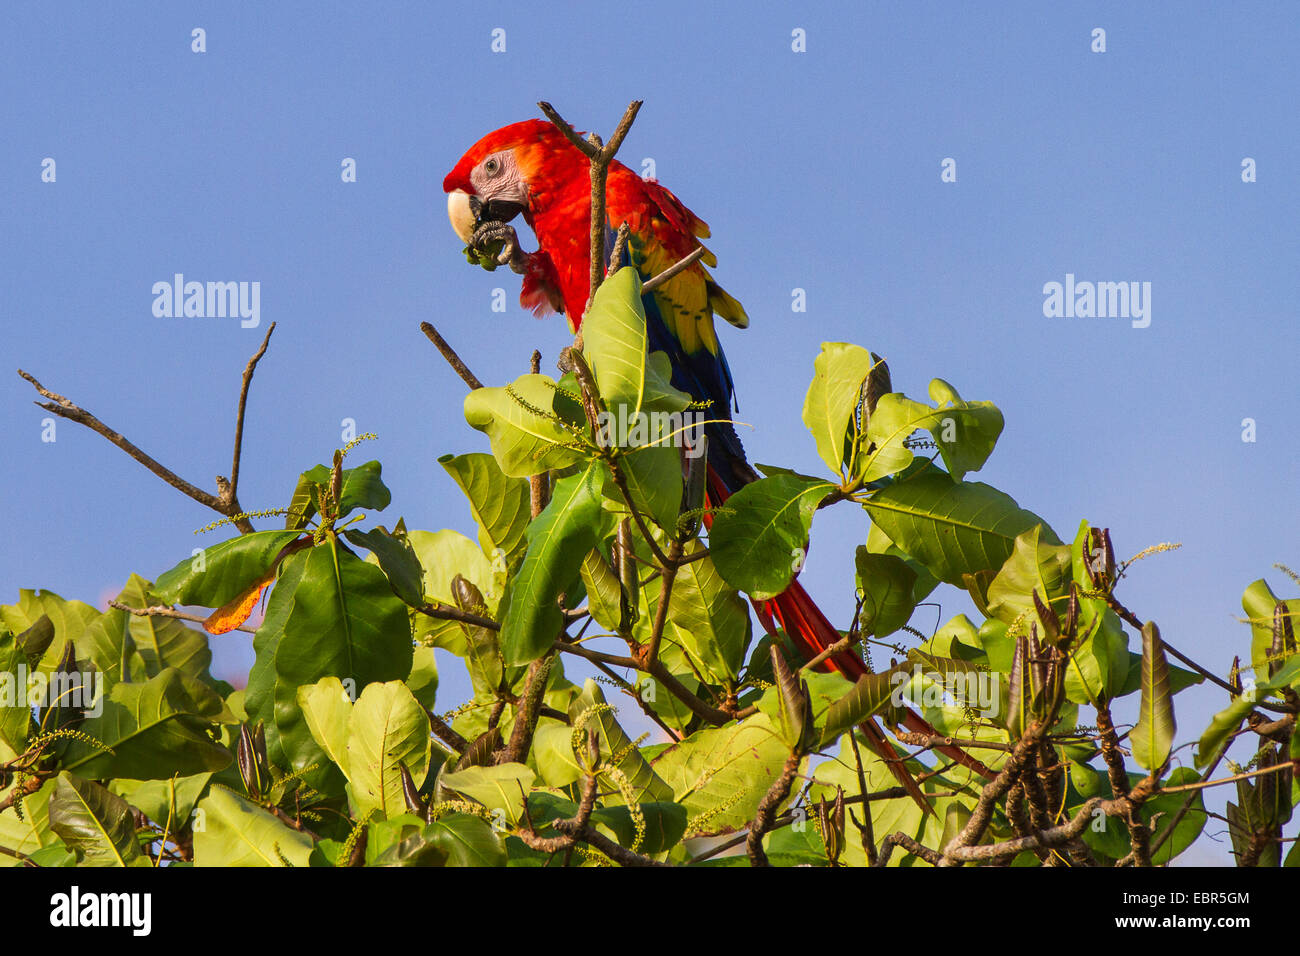 scarlet macaw (Ara macao), on tree top eating a fruit, Costa Rica - Stock Image